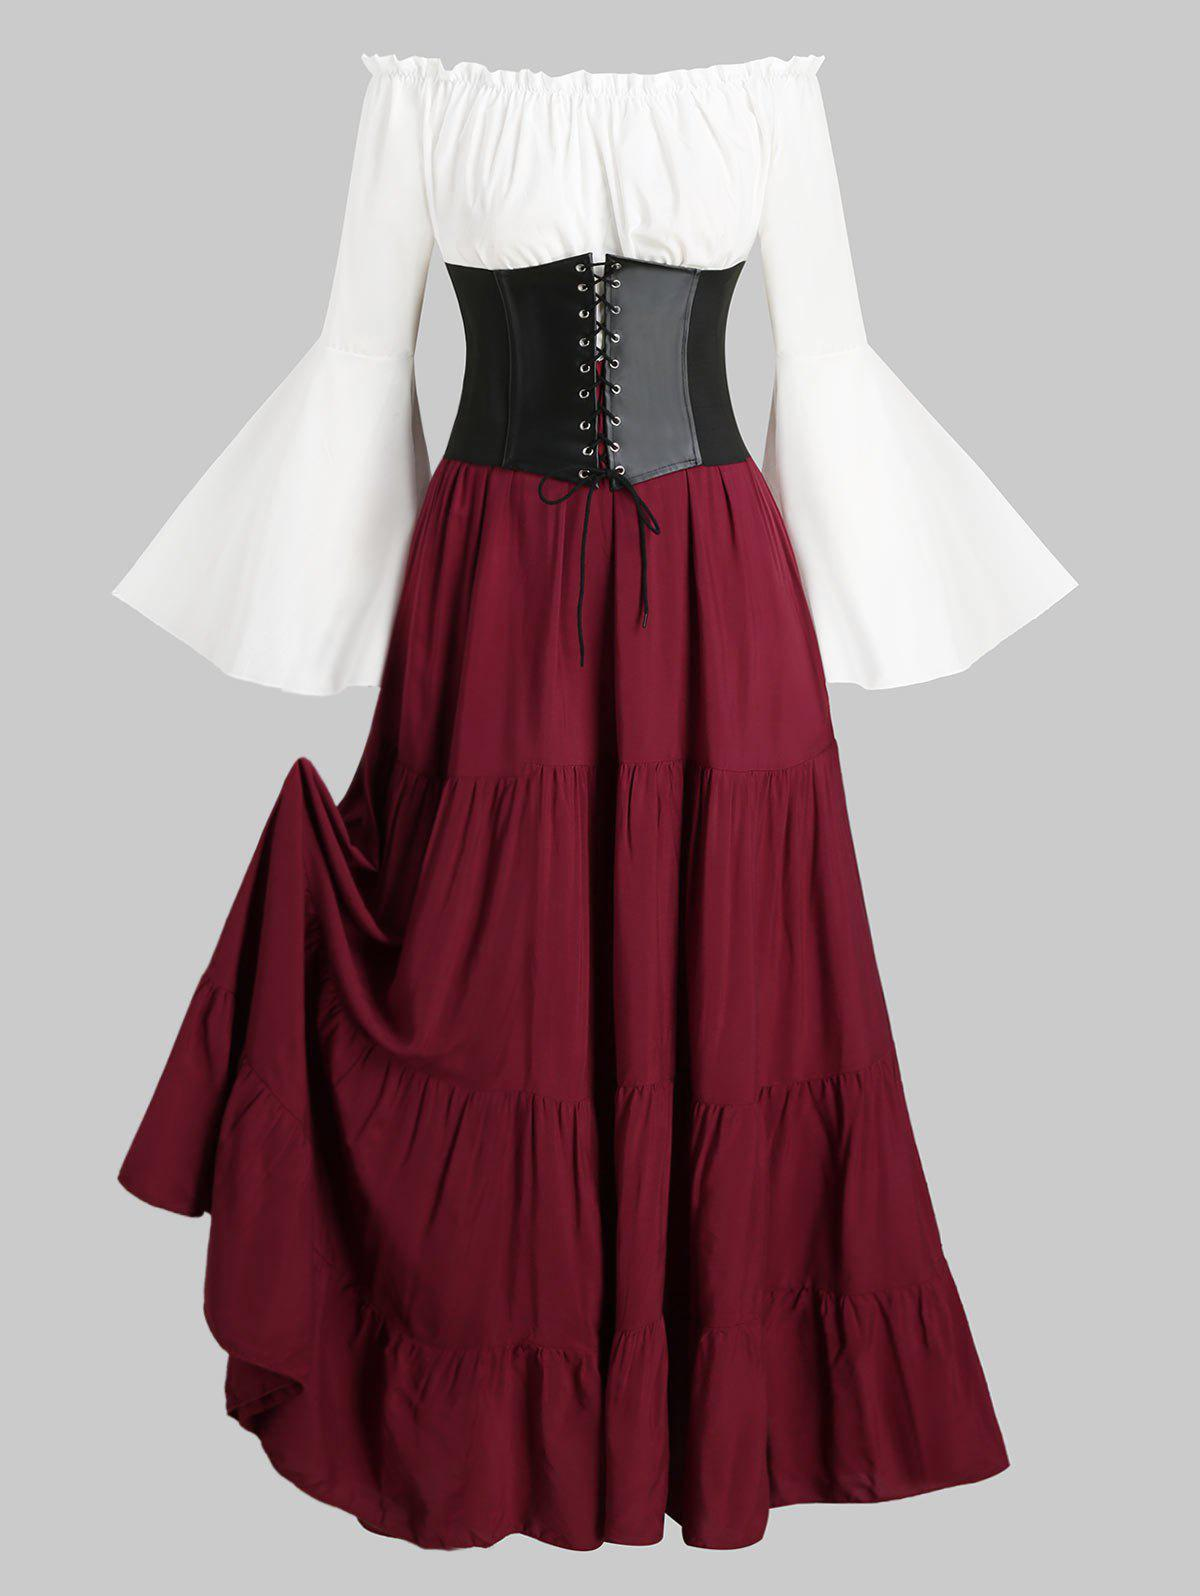 Sale Lace-up Corset Belt Vintage Renaissance Medieval Bell Sleeve Dress